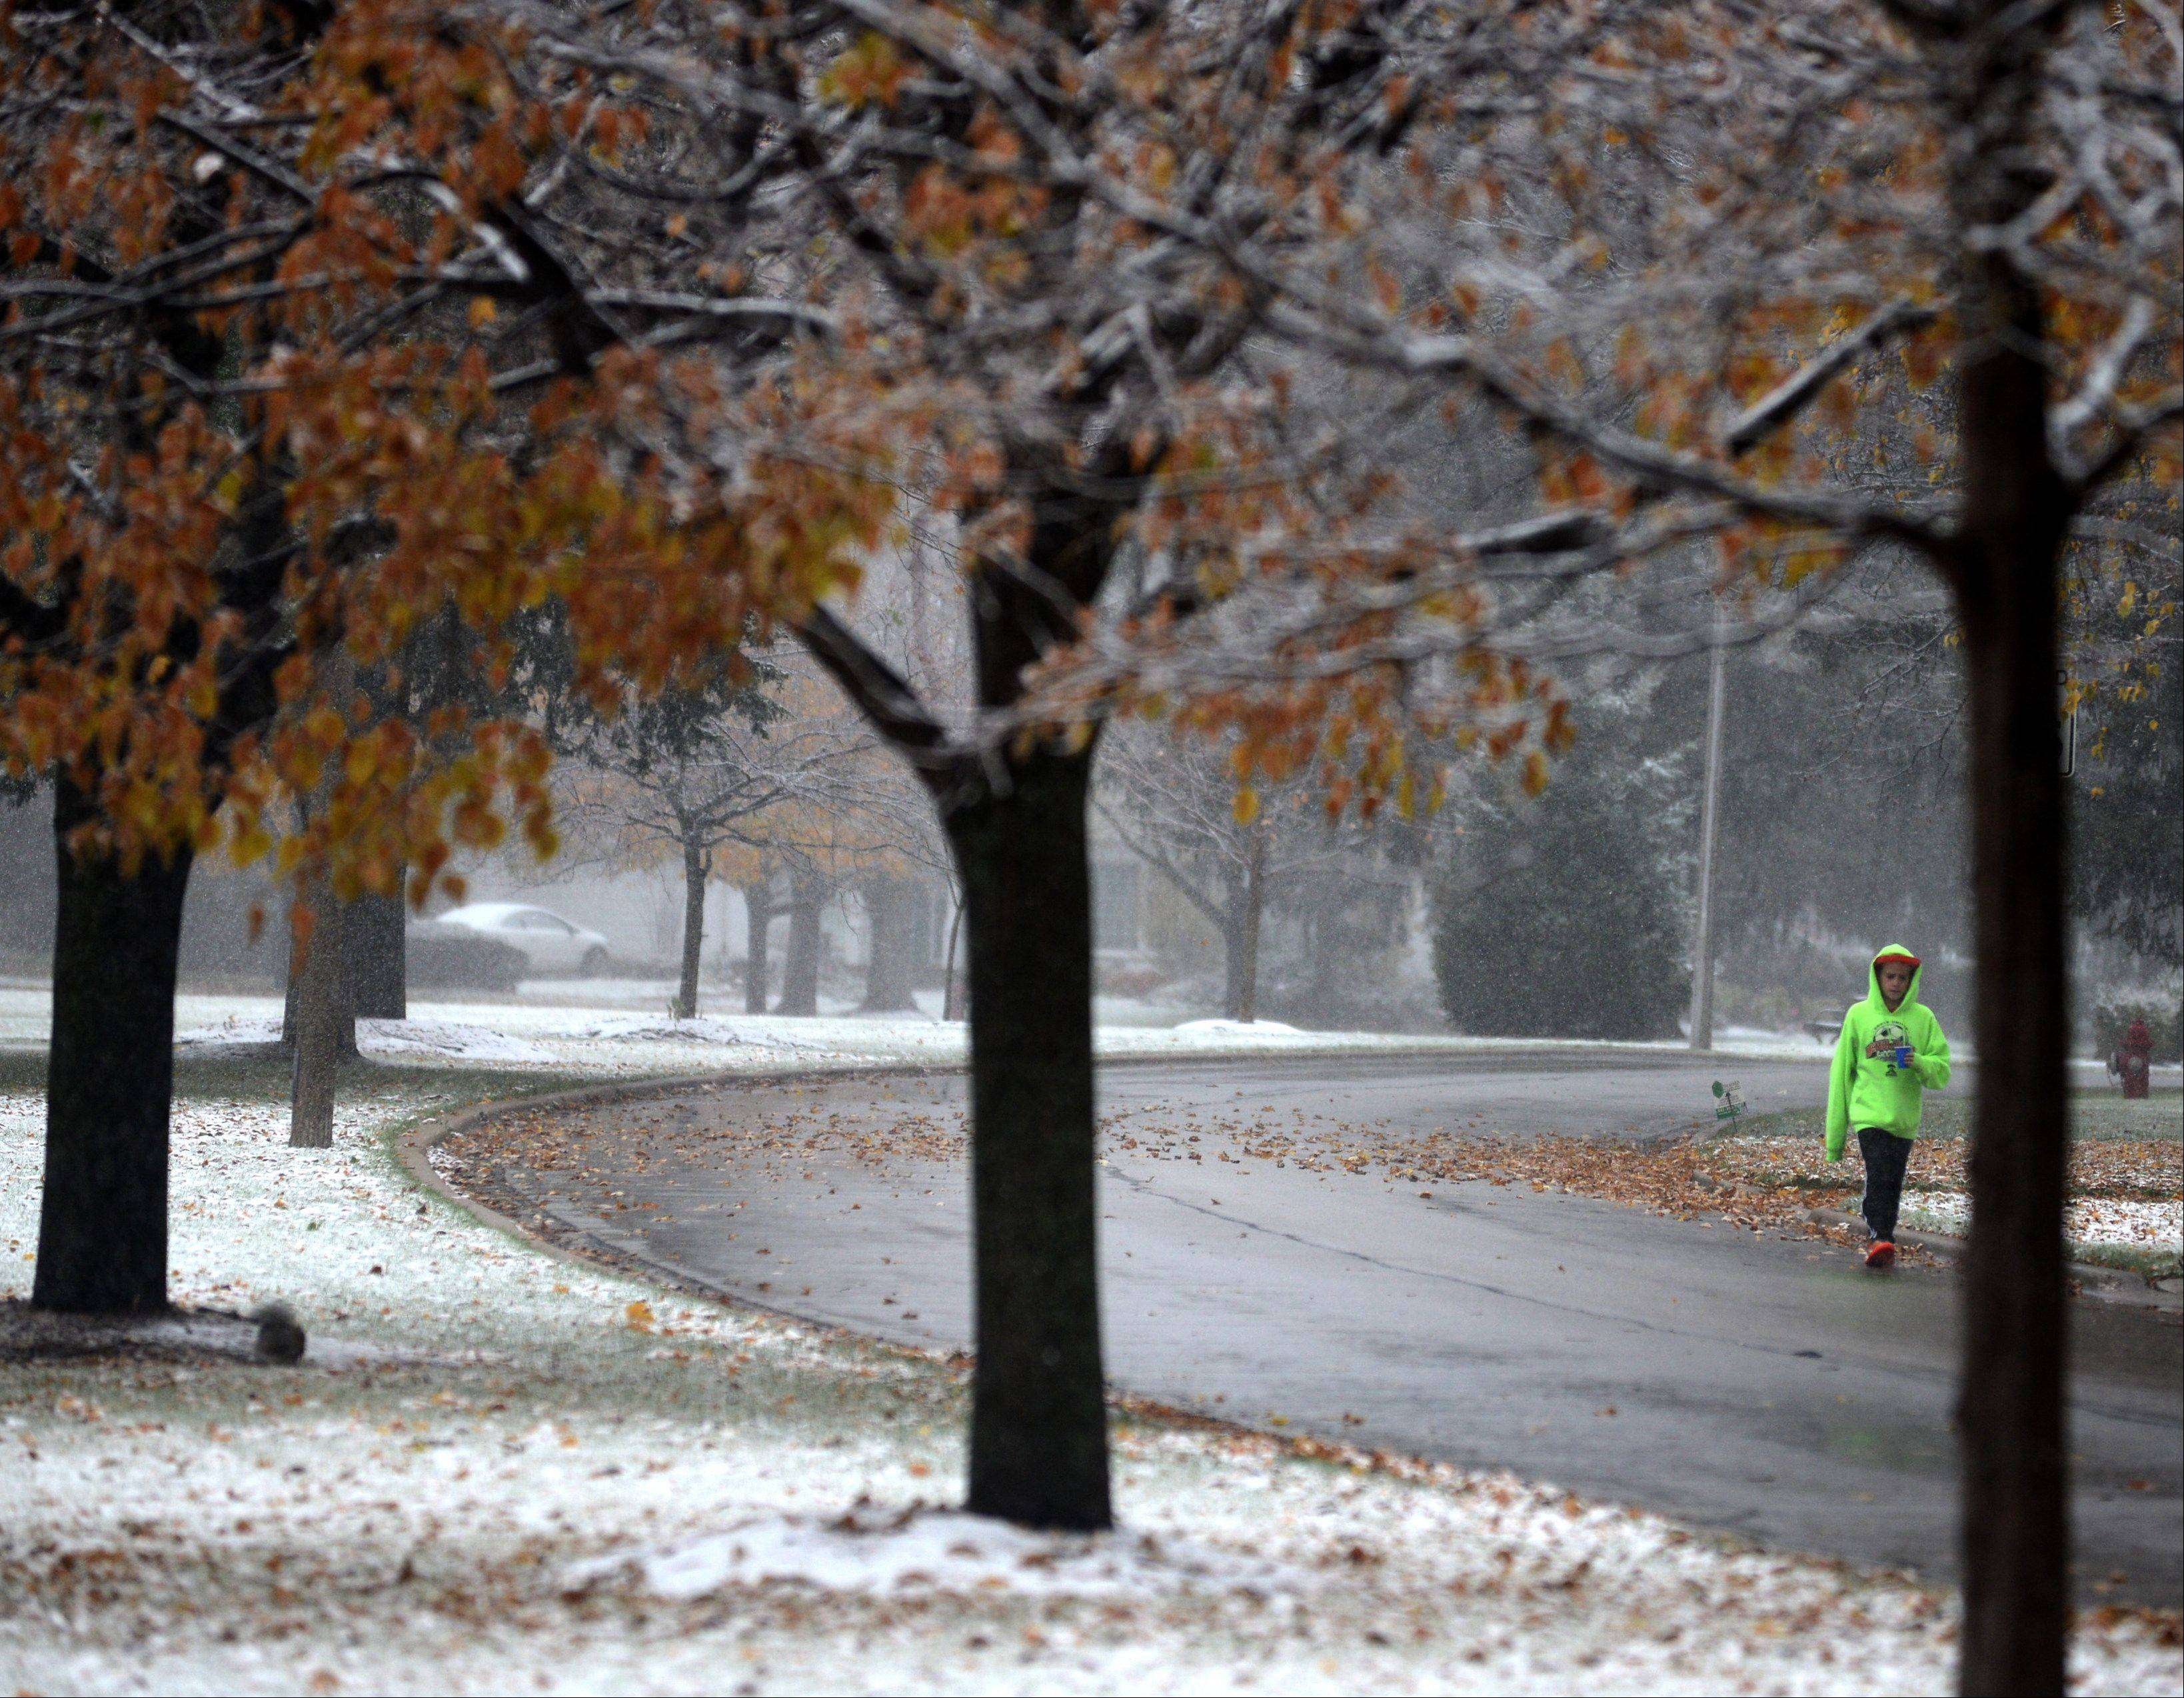 Bryan Morrison, 11, walks along South Windsor Drive in Arlington Heights as the snow begins to gather on Monday afternoon.